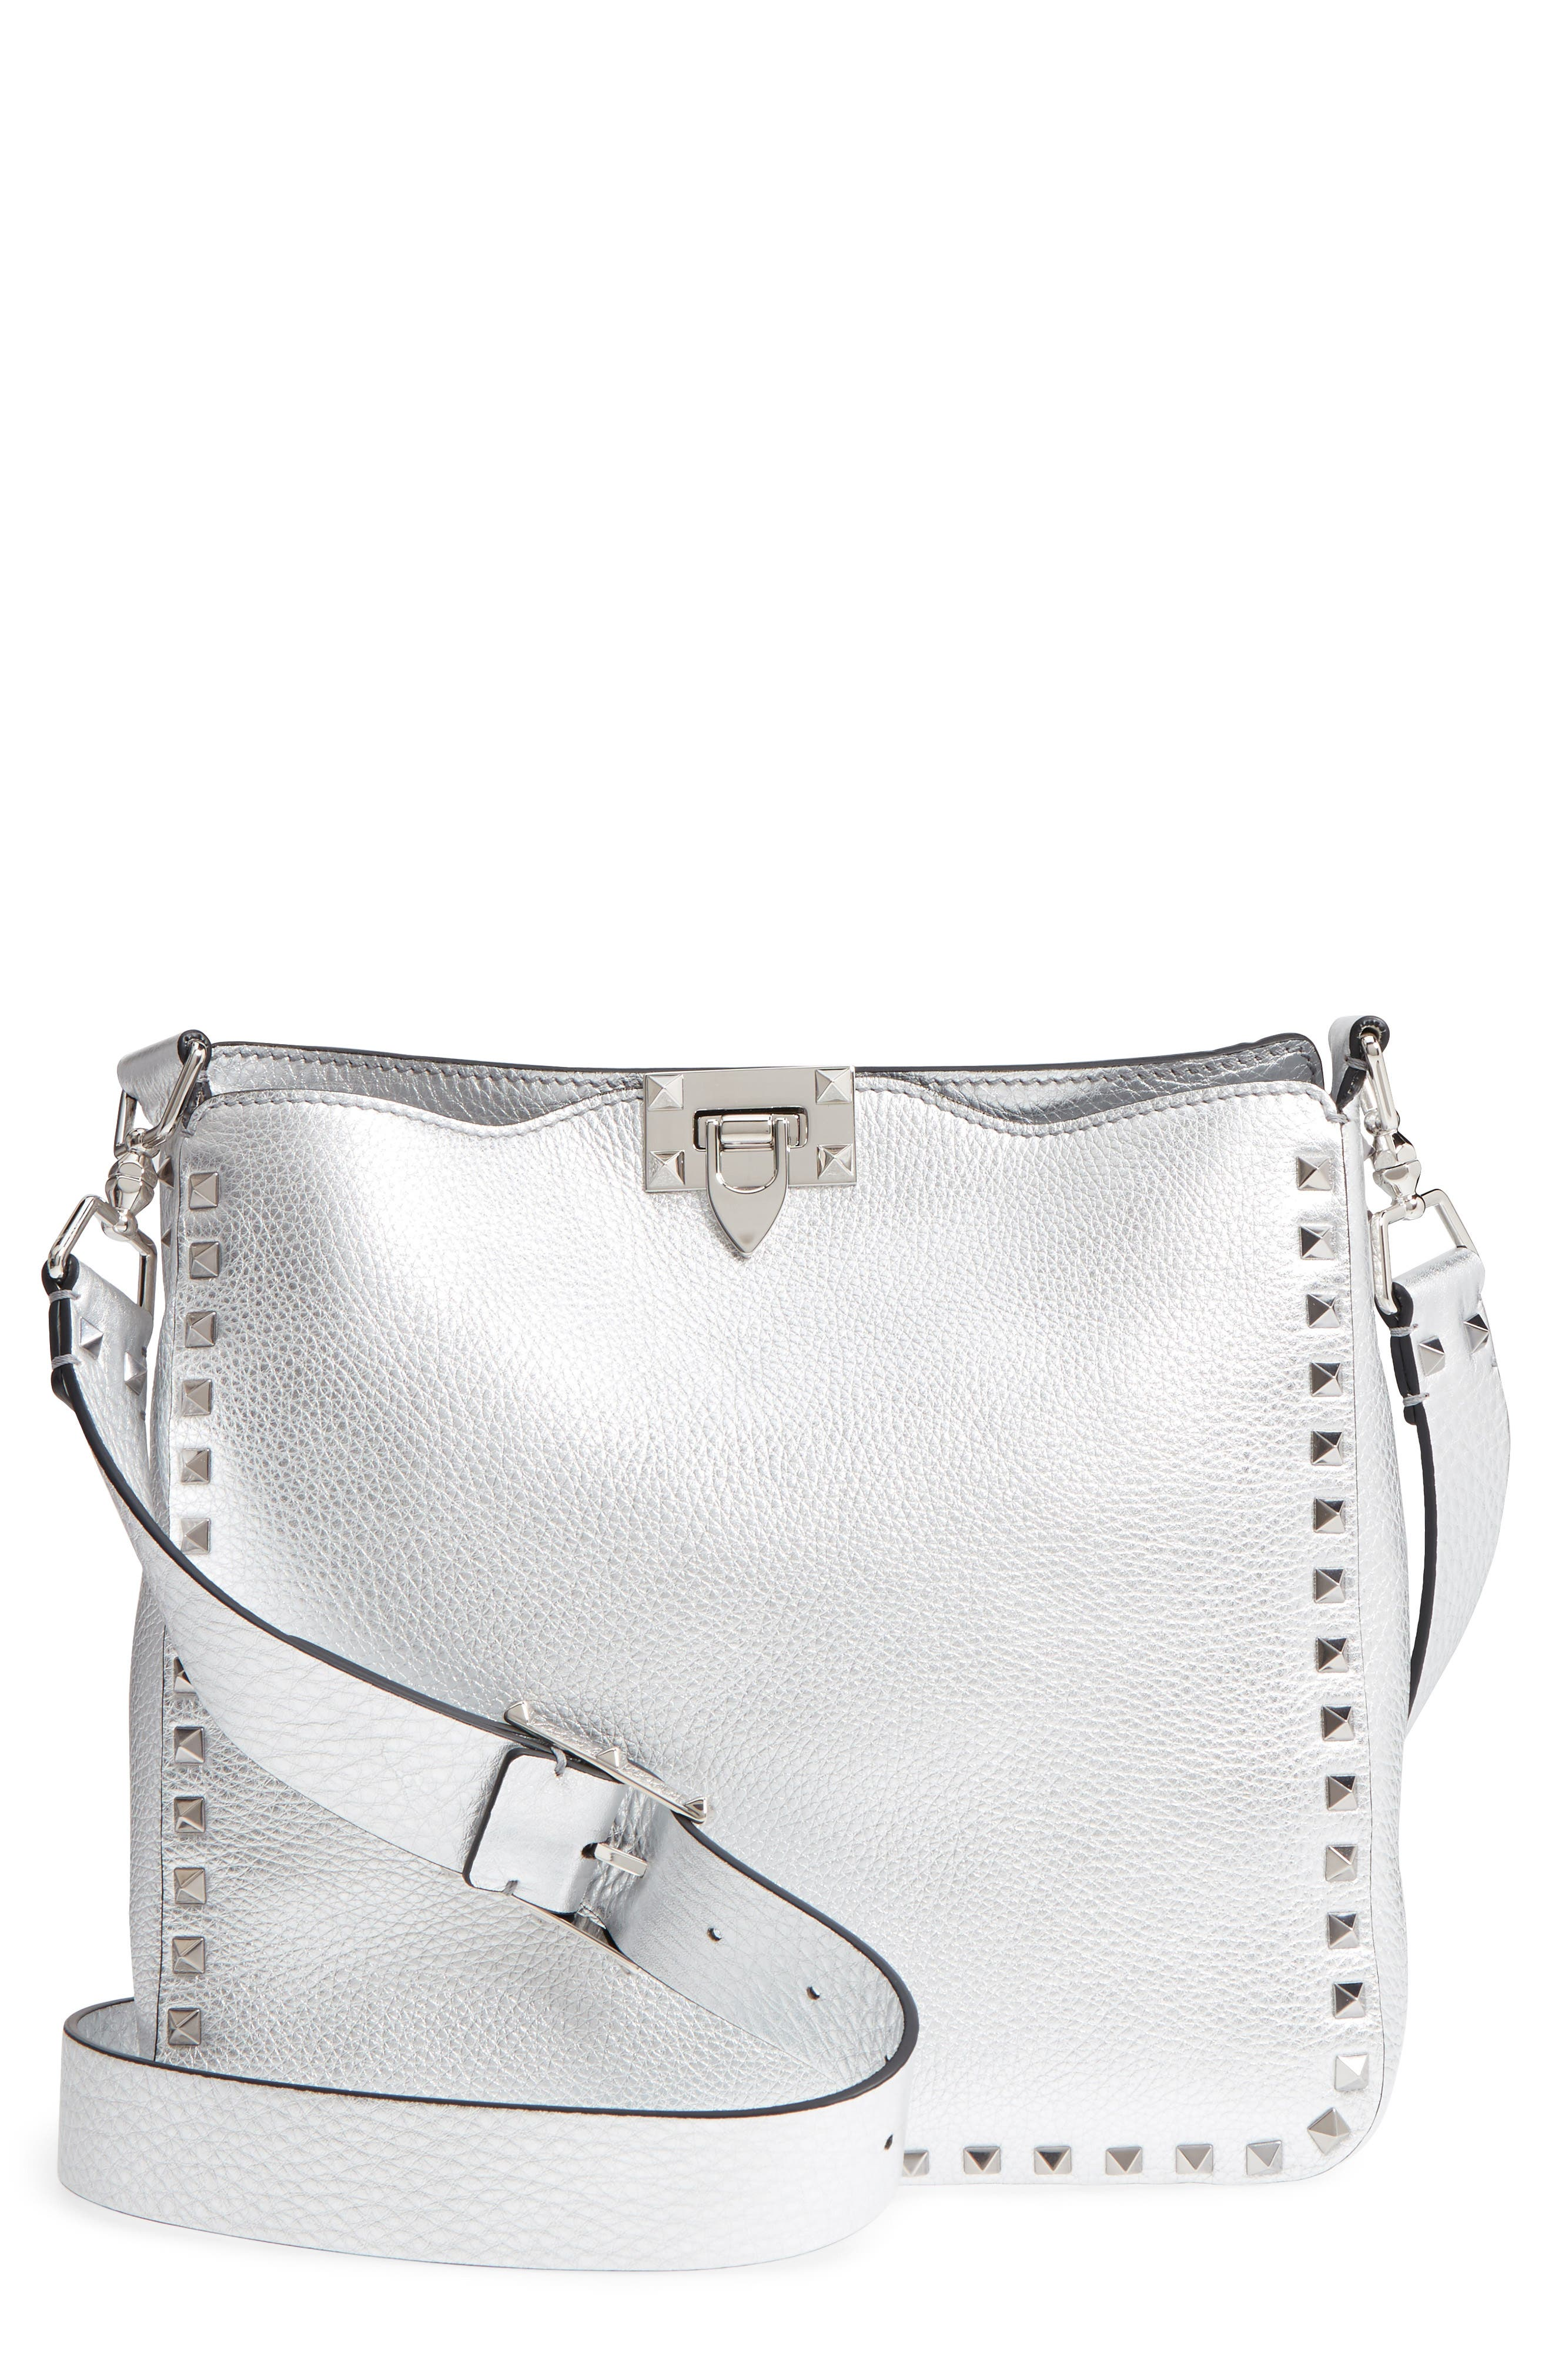 VALENTINO GARAVANI Small Rockstud Metallic Leather Hobo